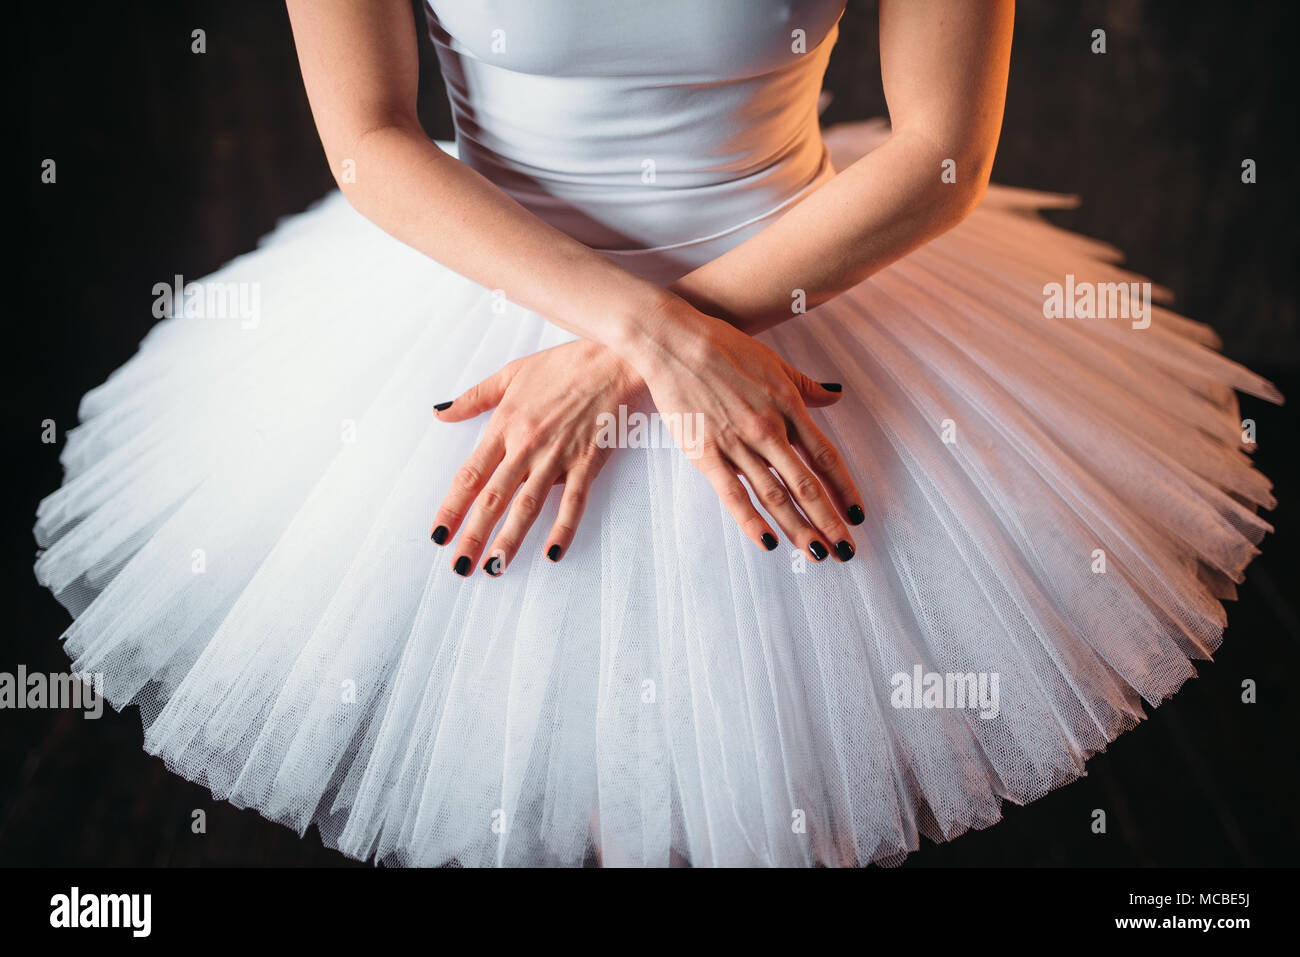 Classical ballet dancer in dress and cross hands - Stock Image